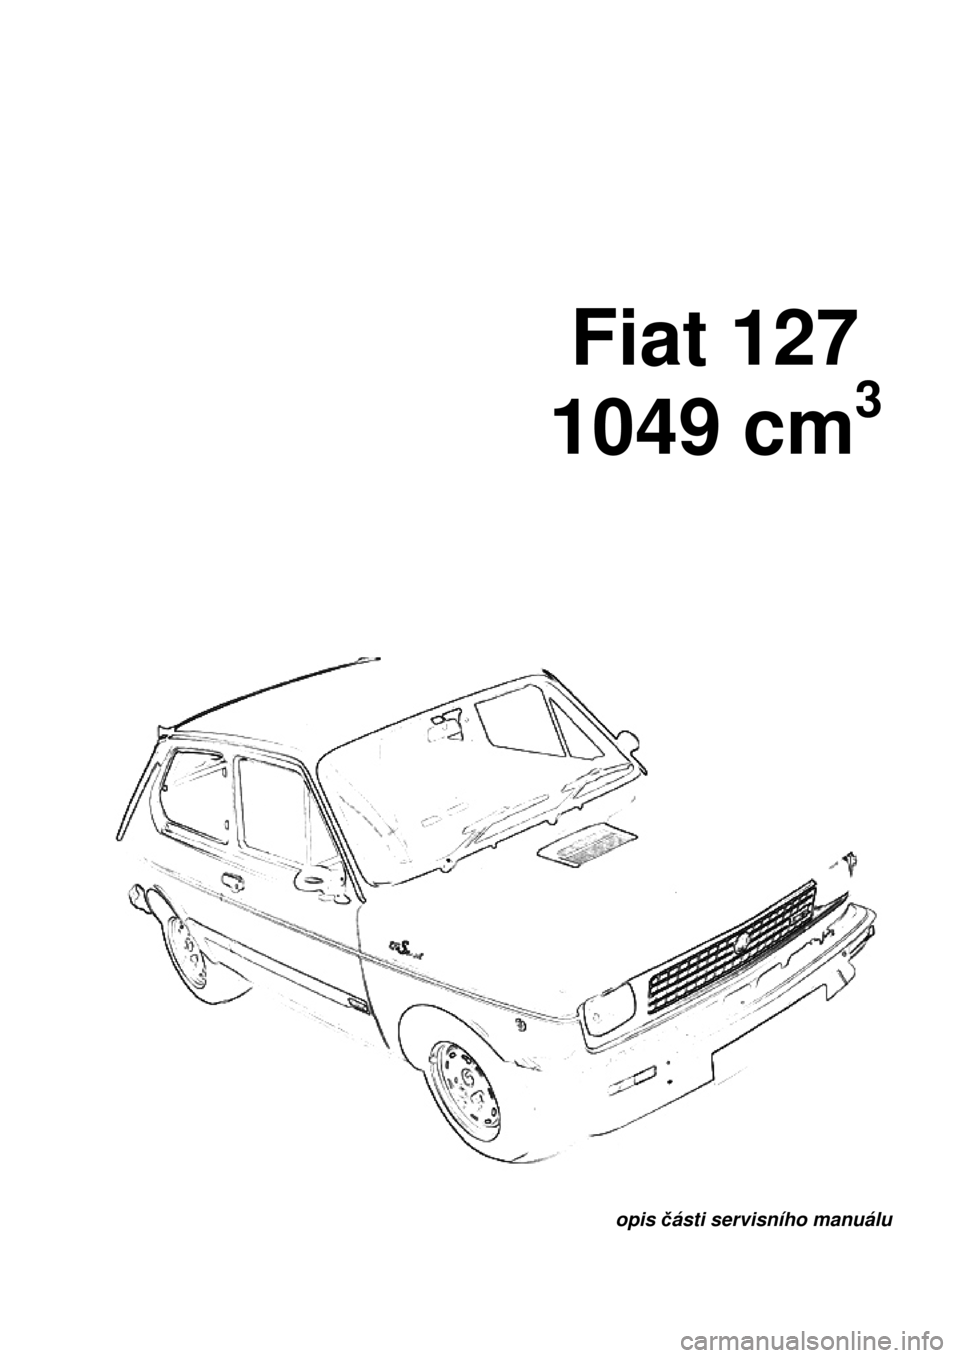 FIAT 127 1980 2.G Workshop Manual, Page 1